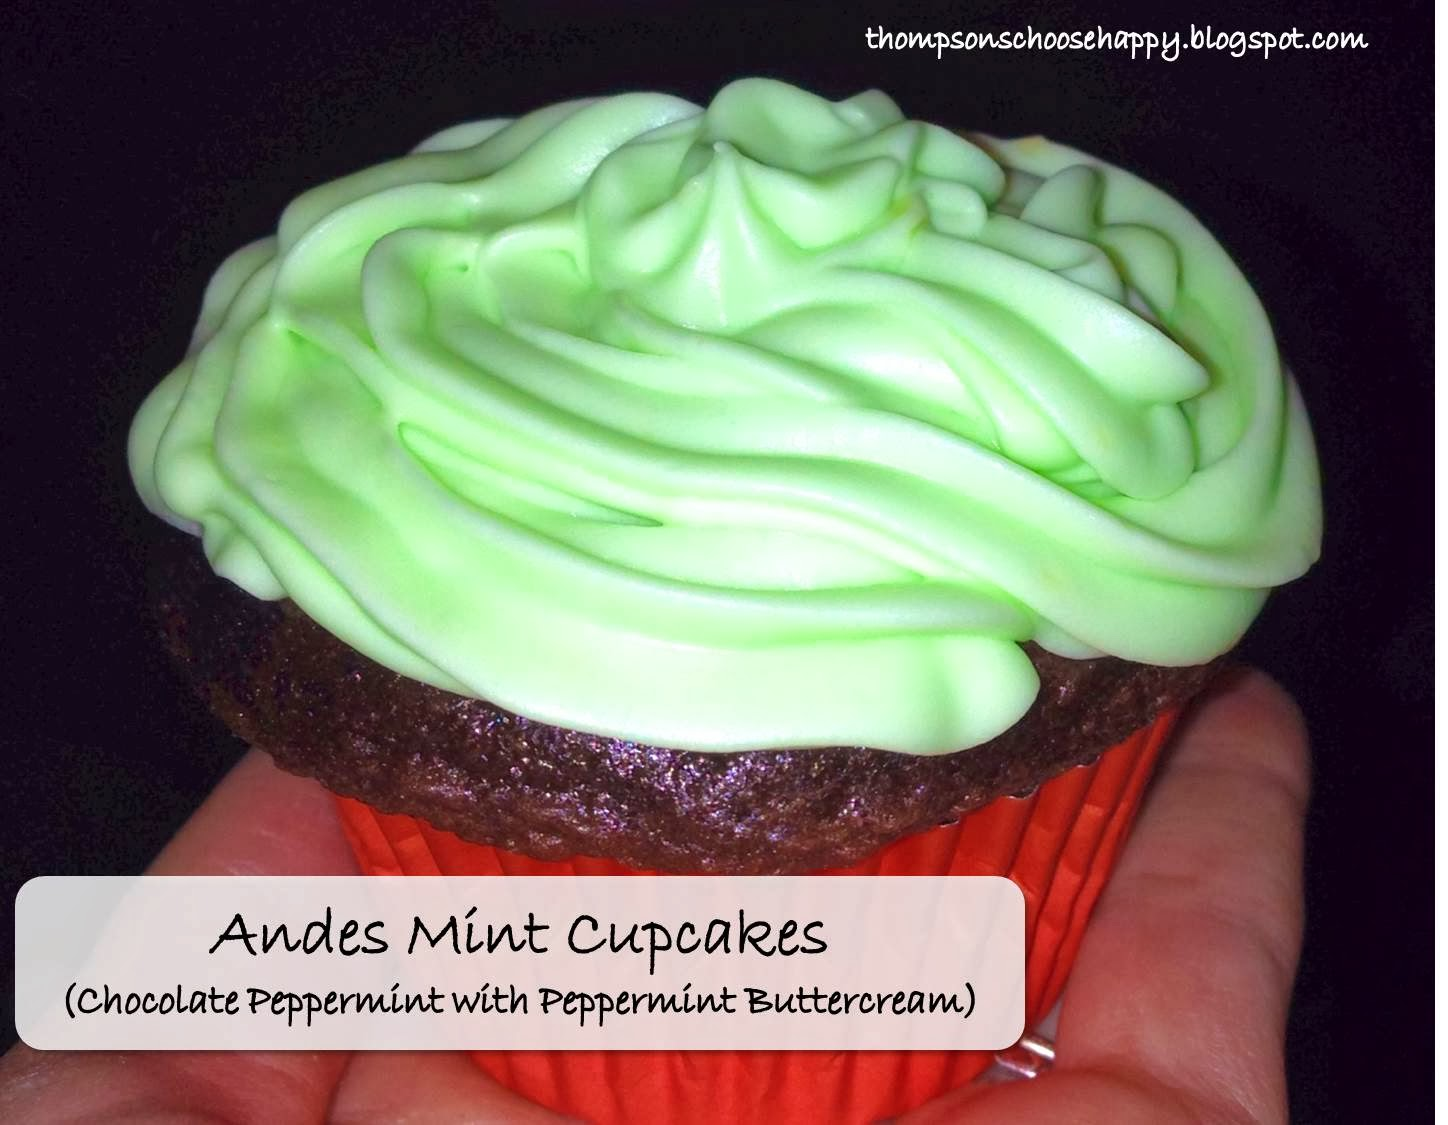 Andes Mint Cupcakes (Chocolate cupcakes with chocolate peppermint ganache and peppermint buttercream) | Choosing Happy blog